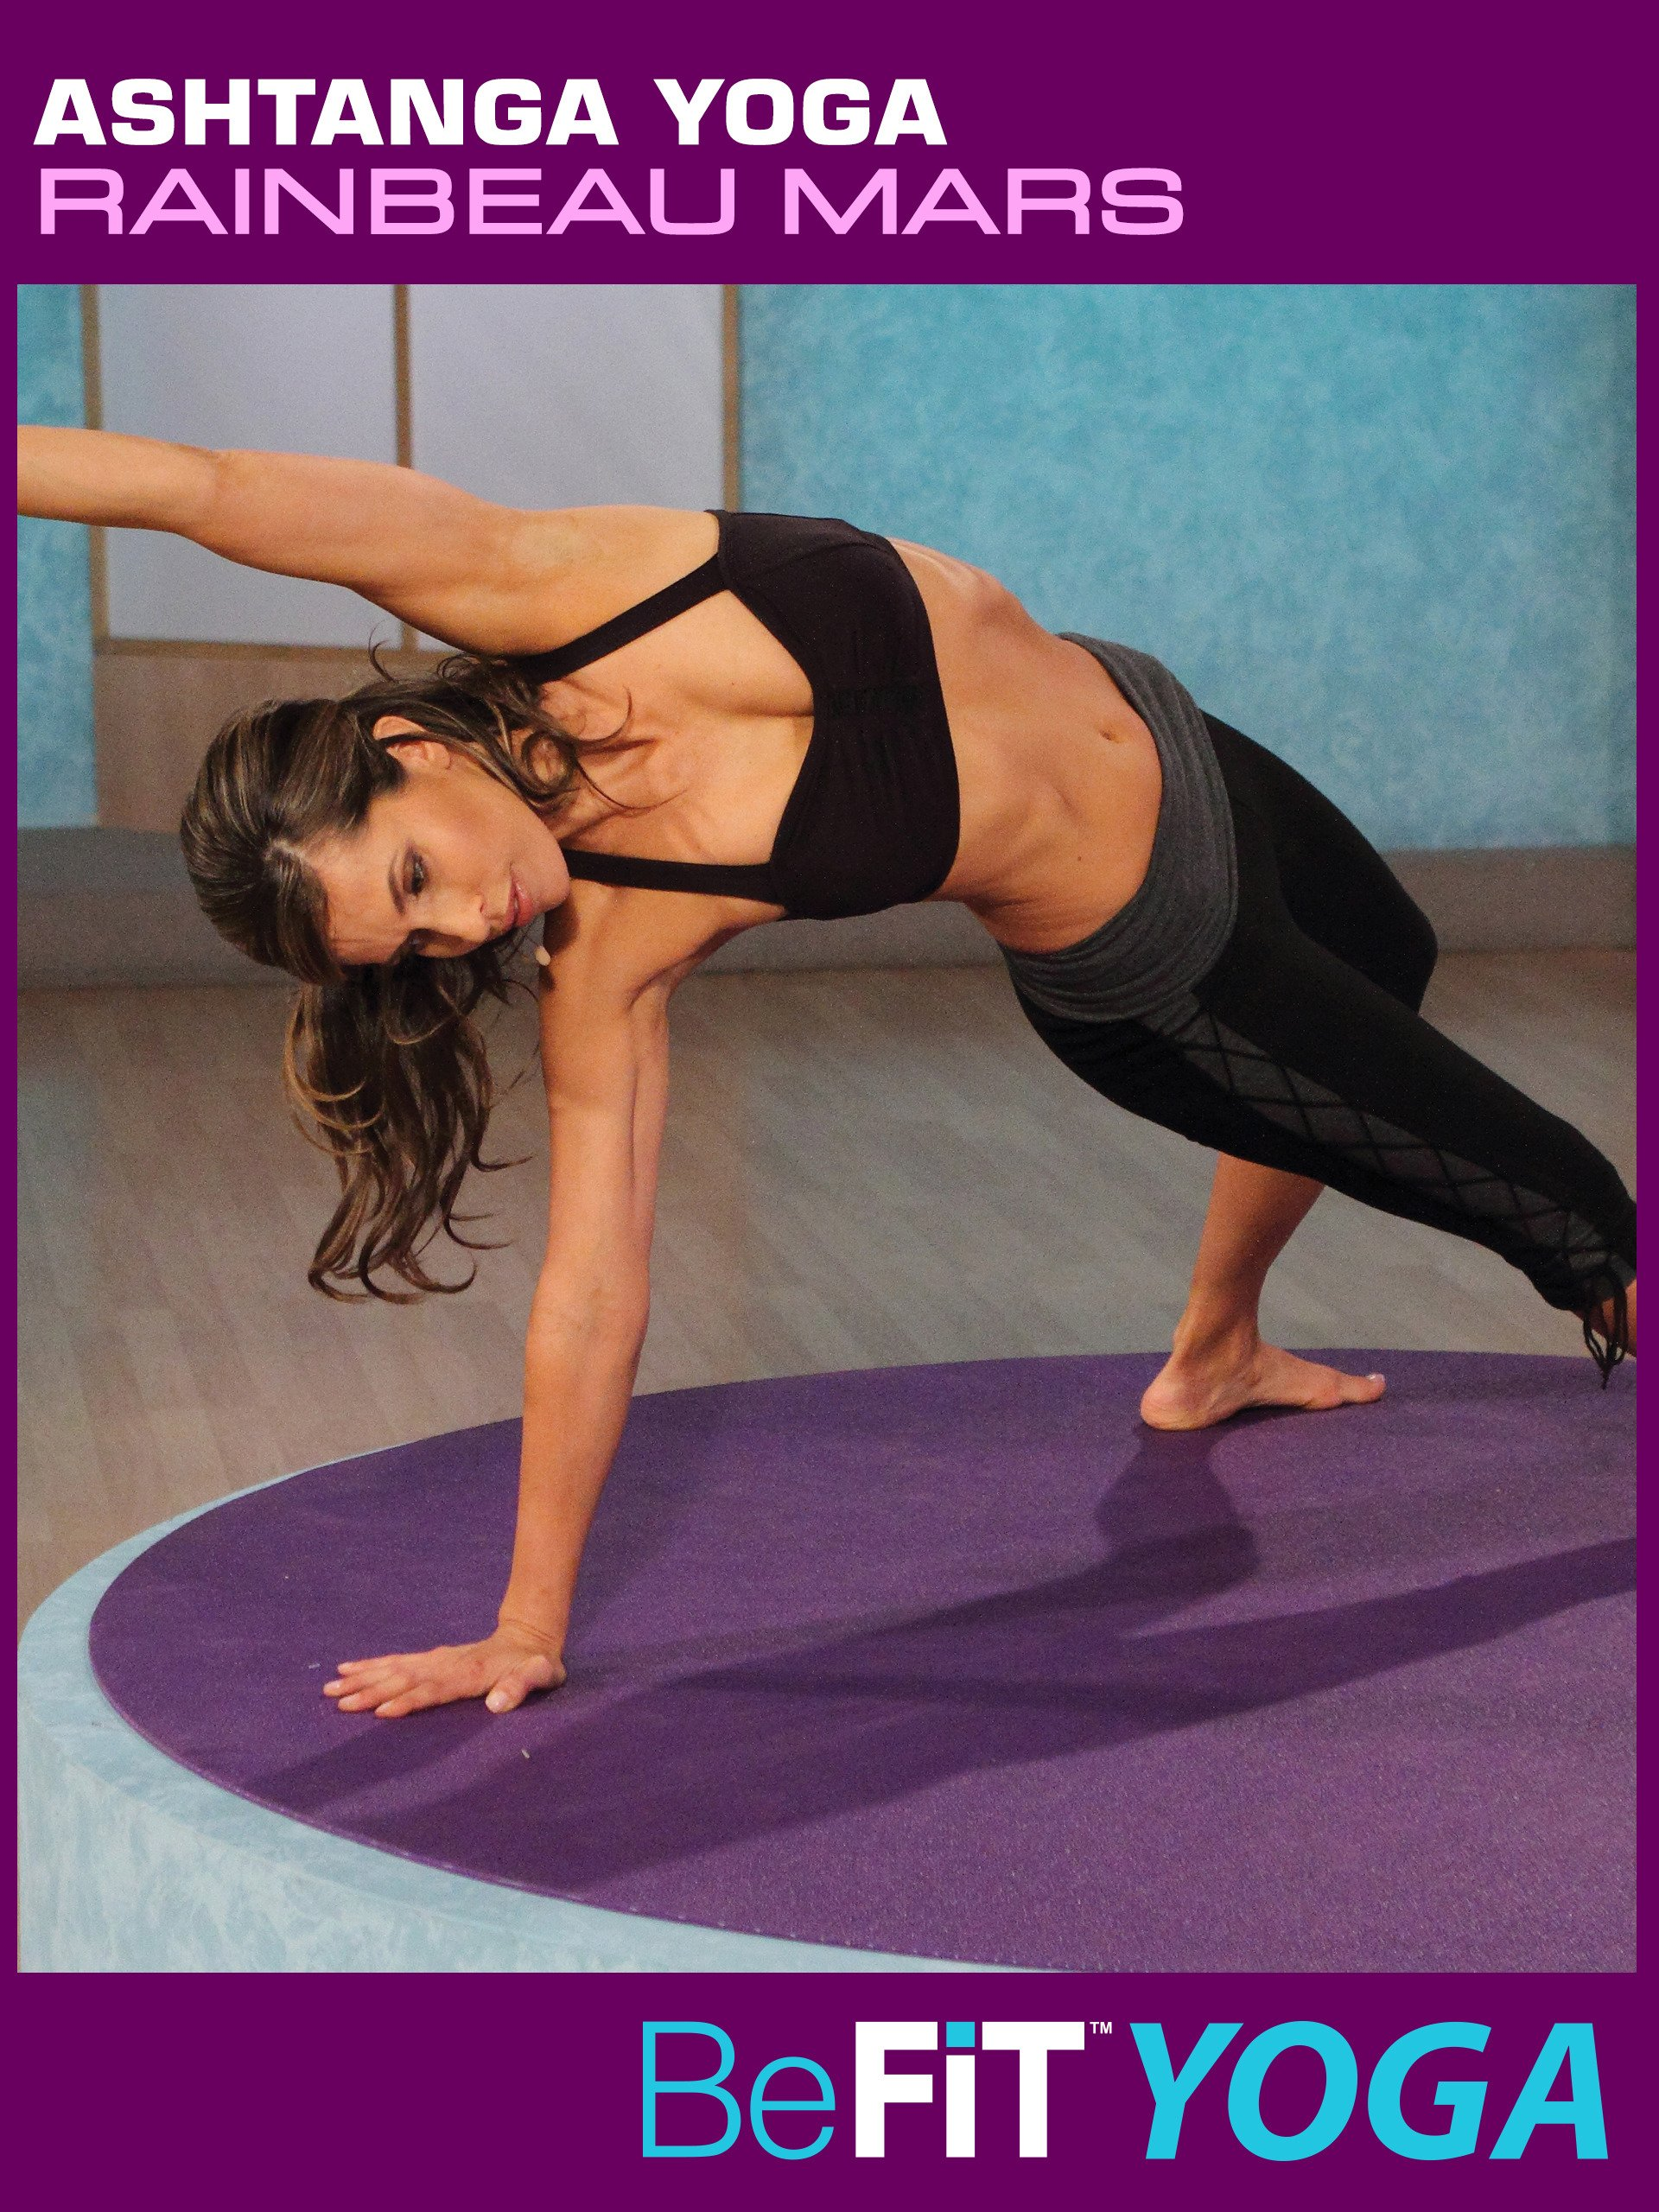 Watch Ashtanga Yoga: Rainbeau Mars- BeFit Yoga | Prime Video